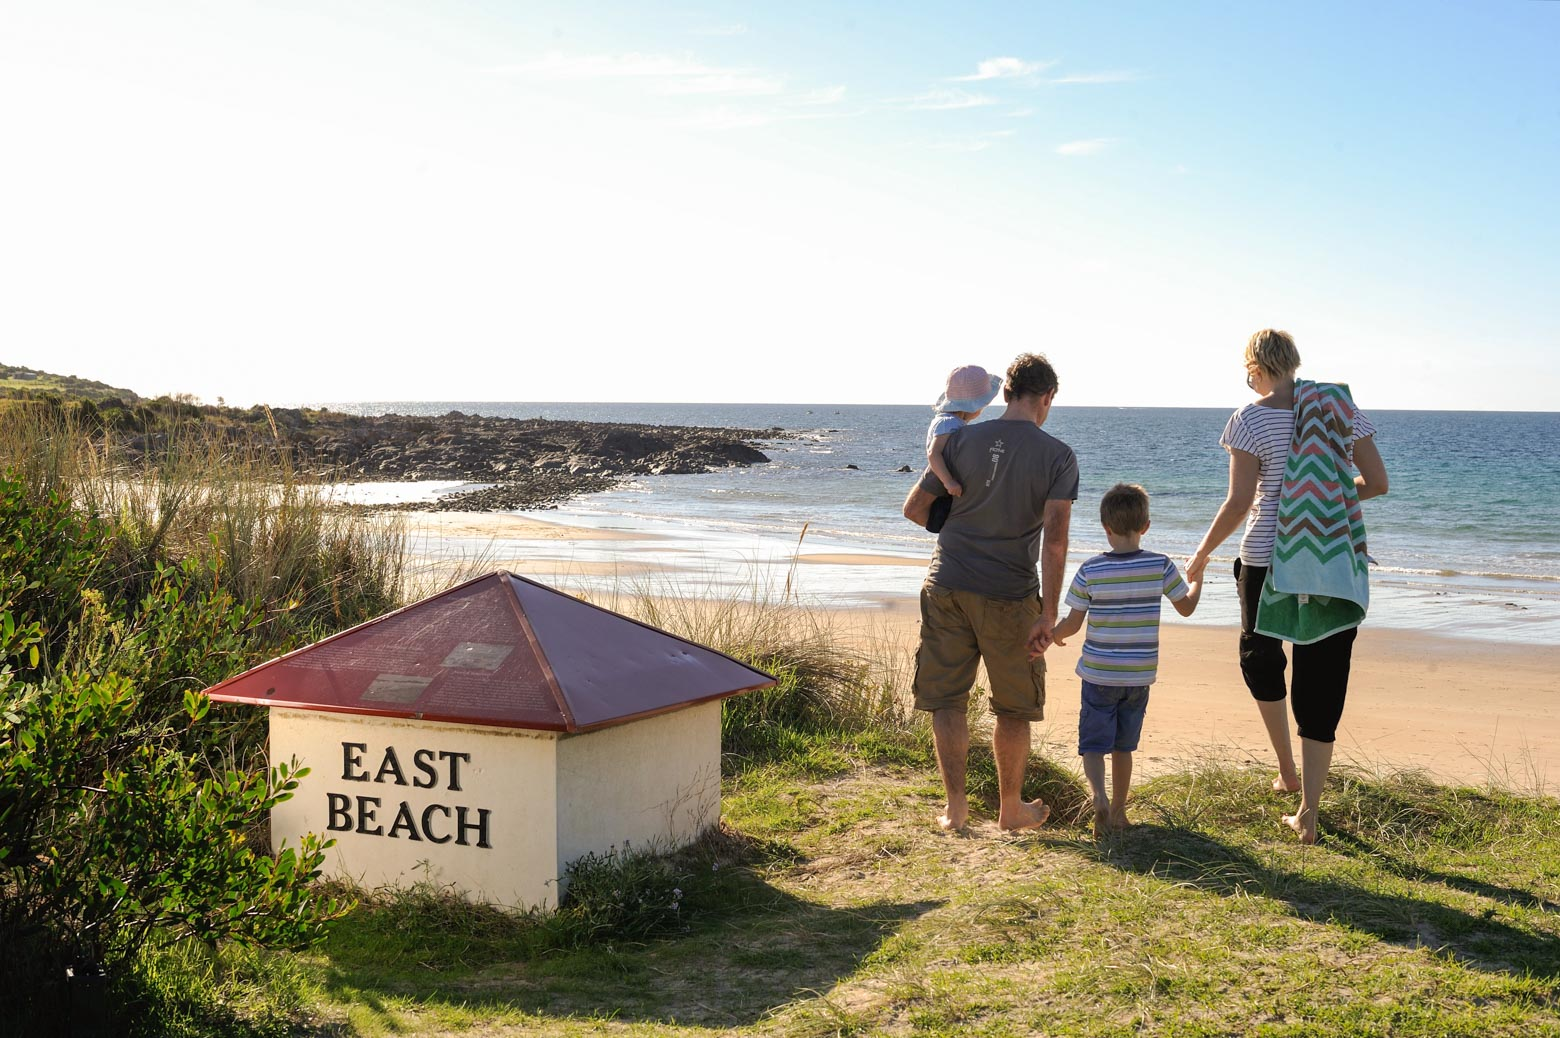 Stay at East Beach at Low Head on your Lap of Tasmania road trip